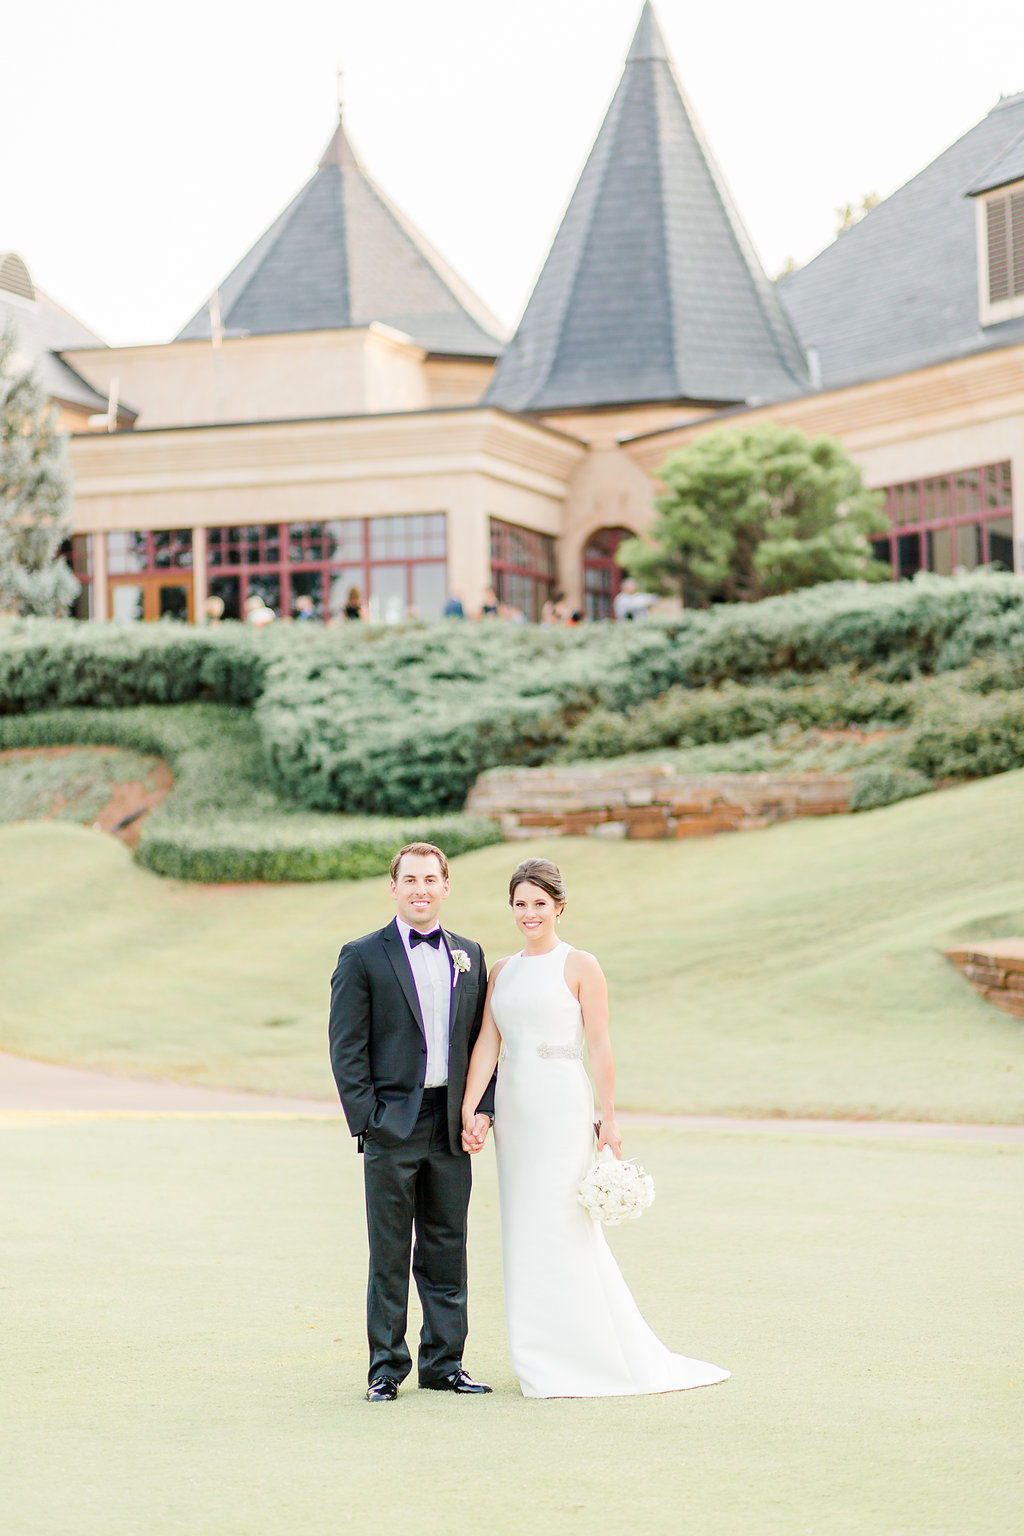 Gallardia-Oklahoma-City-Oklahoma-Wedding-Photographer-Holly-Felts-Photography-Photos-350